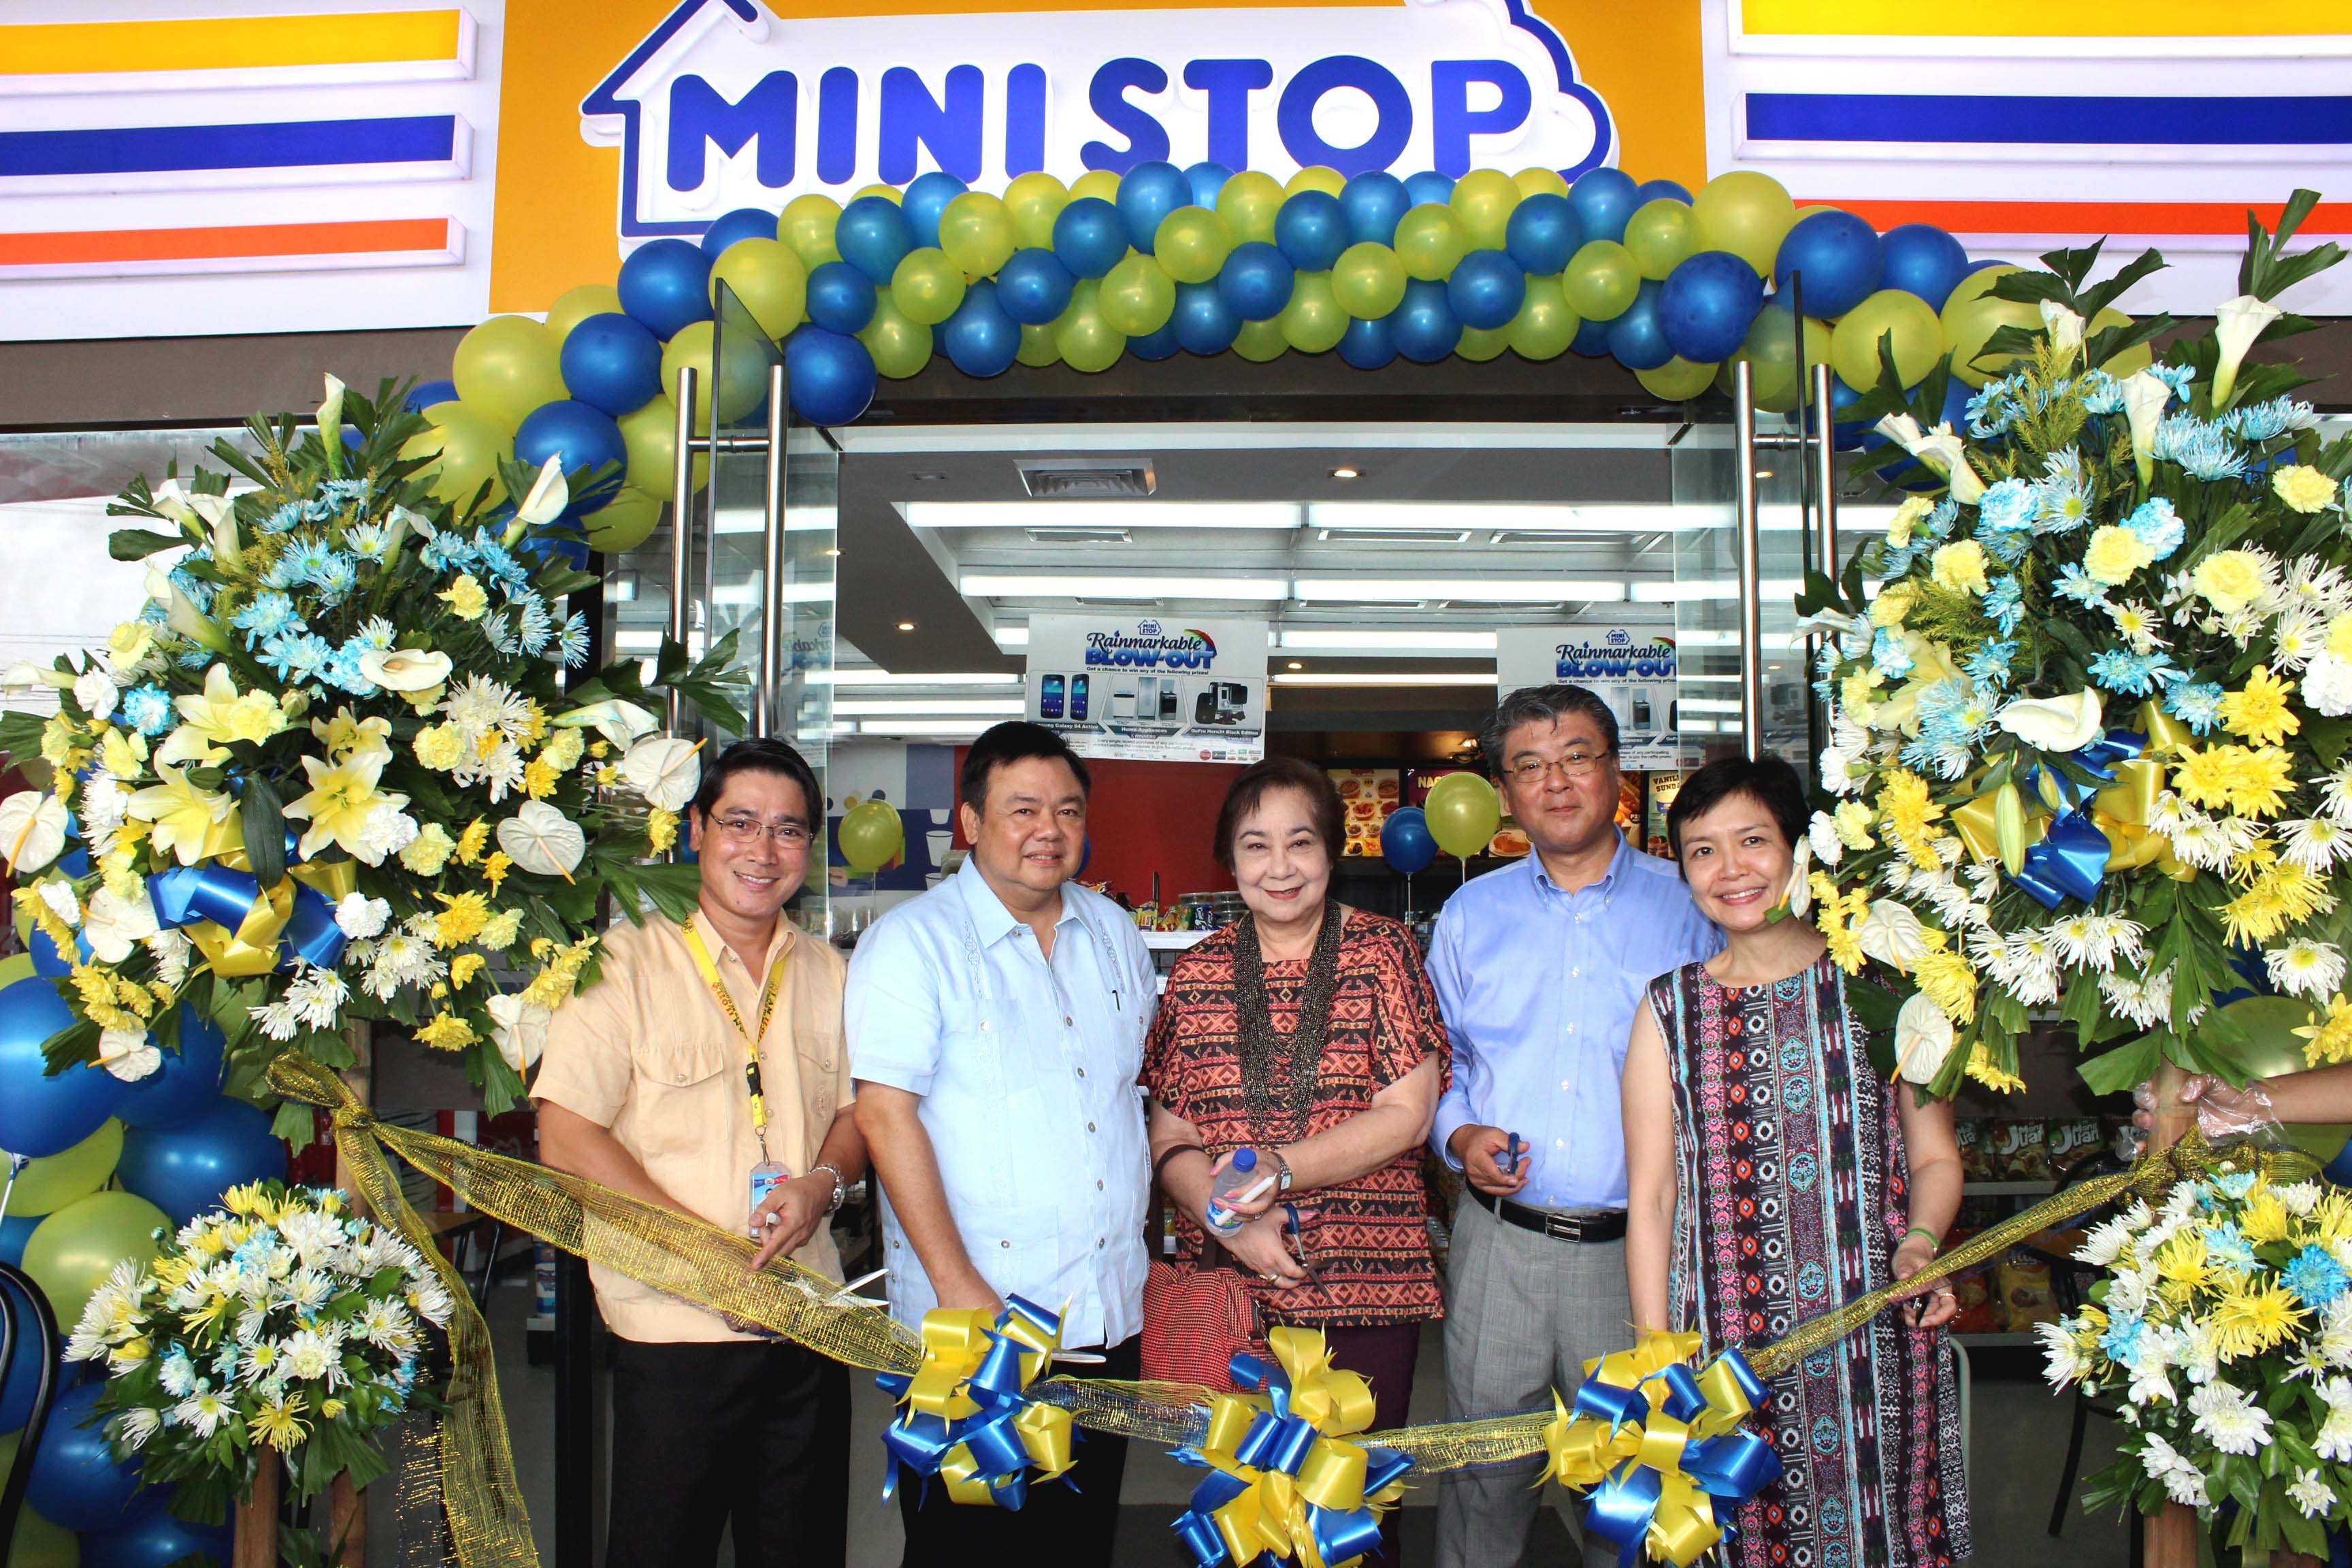 Ministop opens first two stores in Iloilo